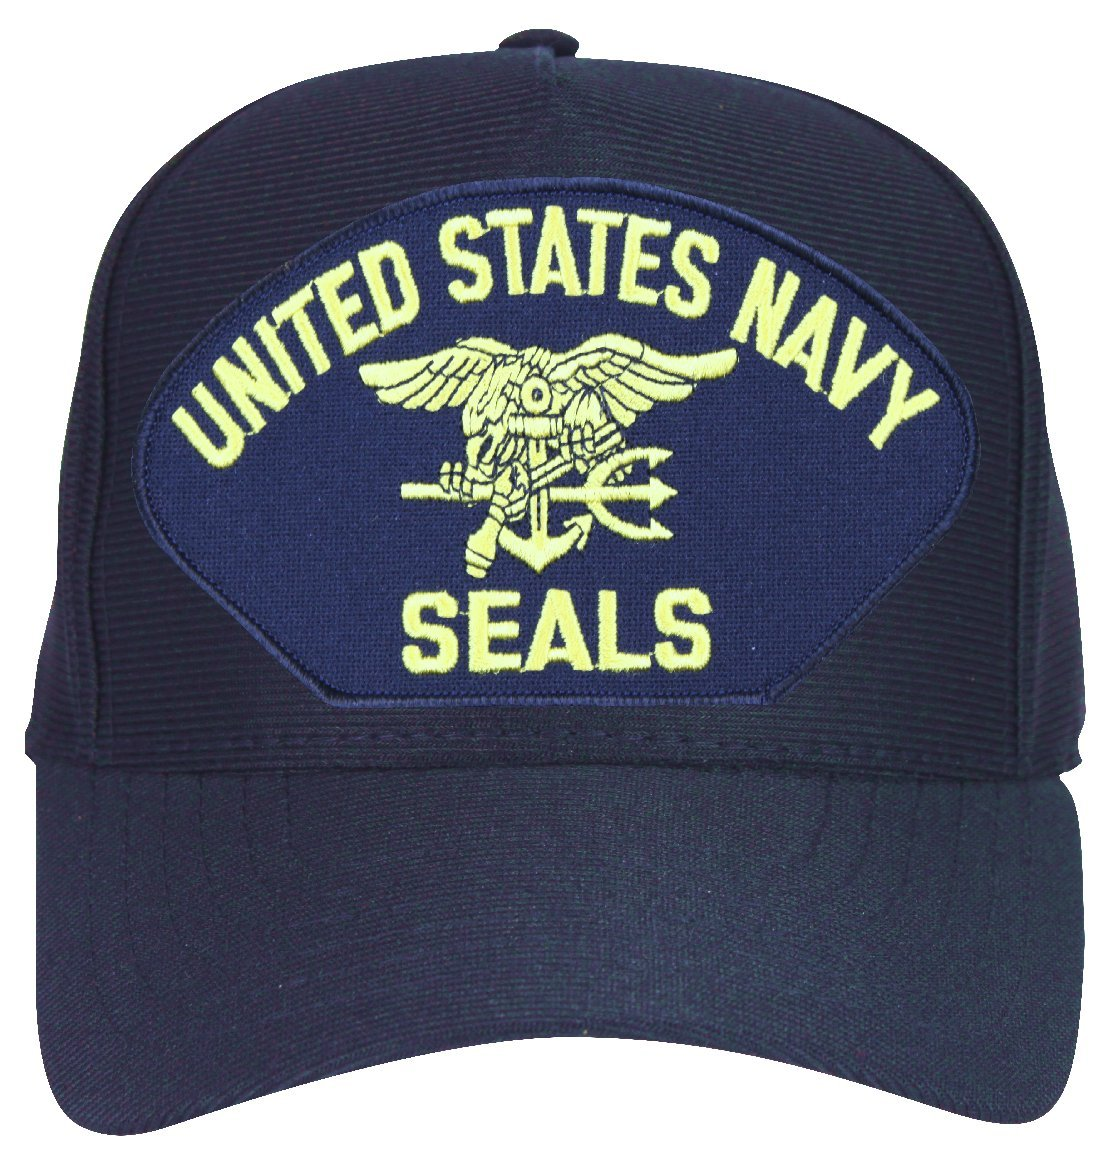 83faf2d6bf3 Amazon.com  MilitaryBest United States Navy Seals with Trident Ball Cap  with Custom Back Text  Sports   Outdoors